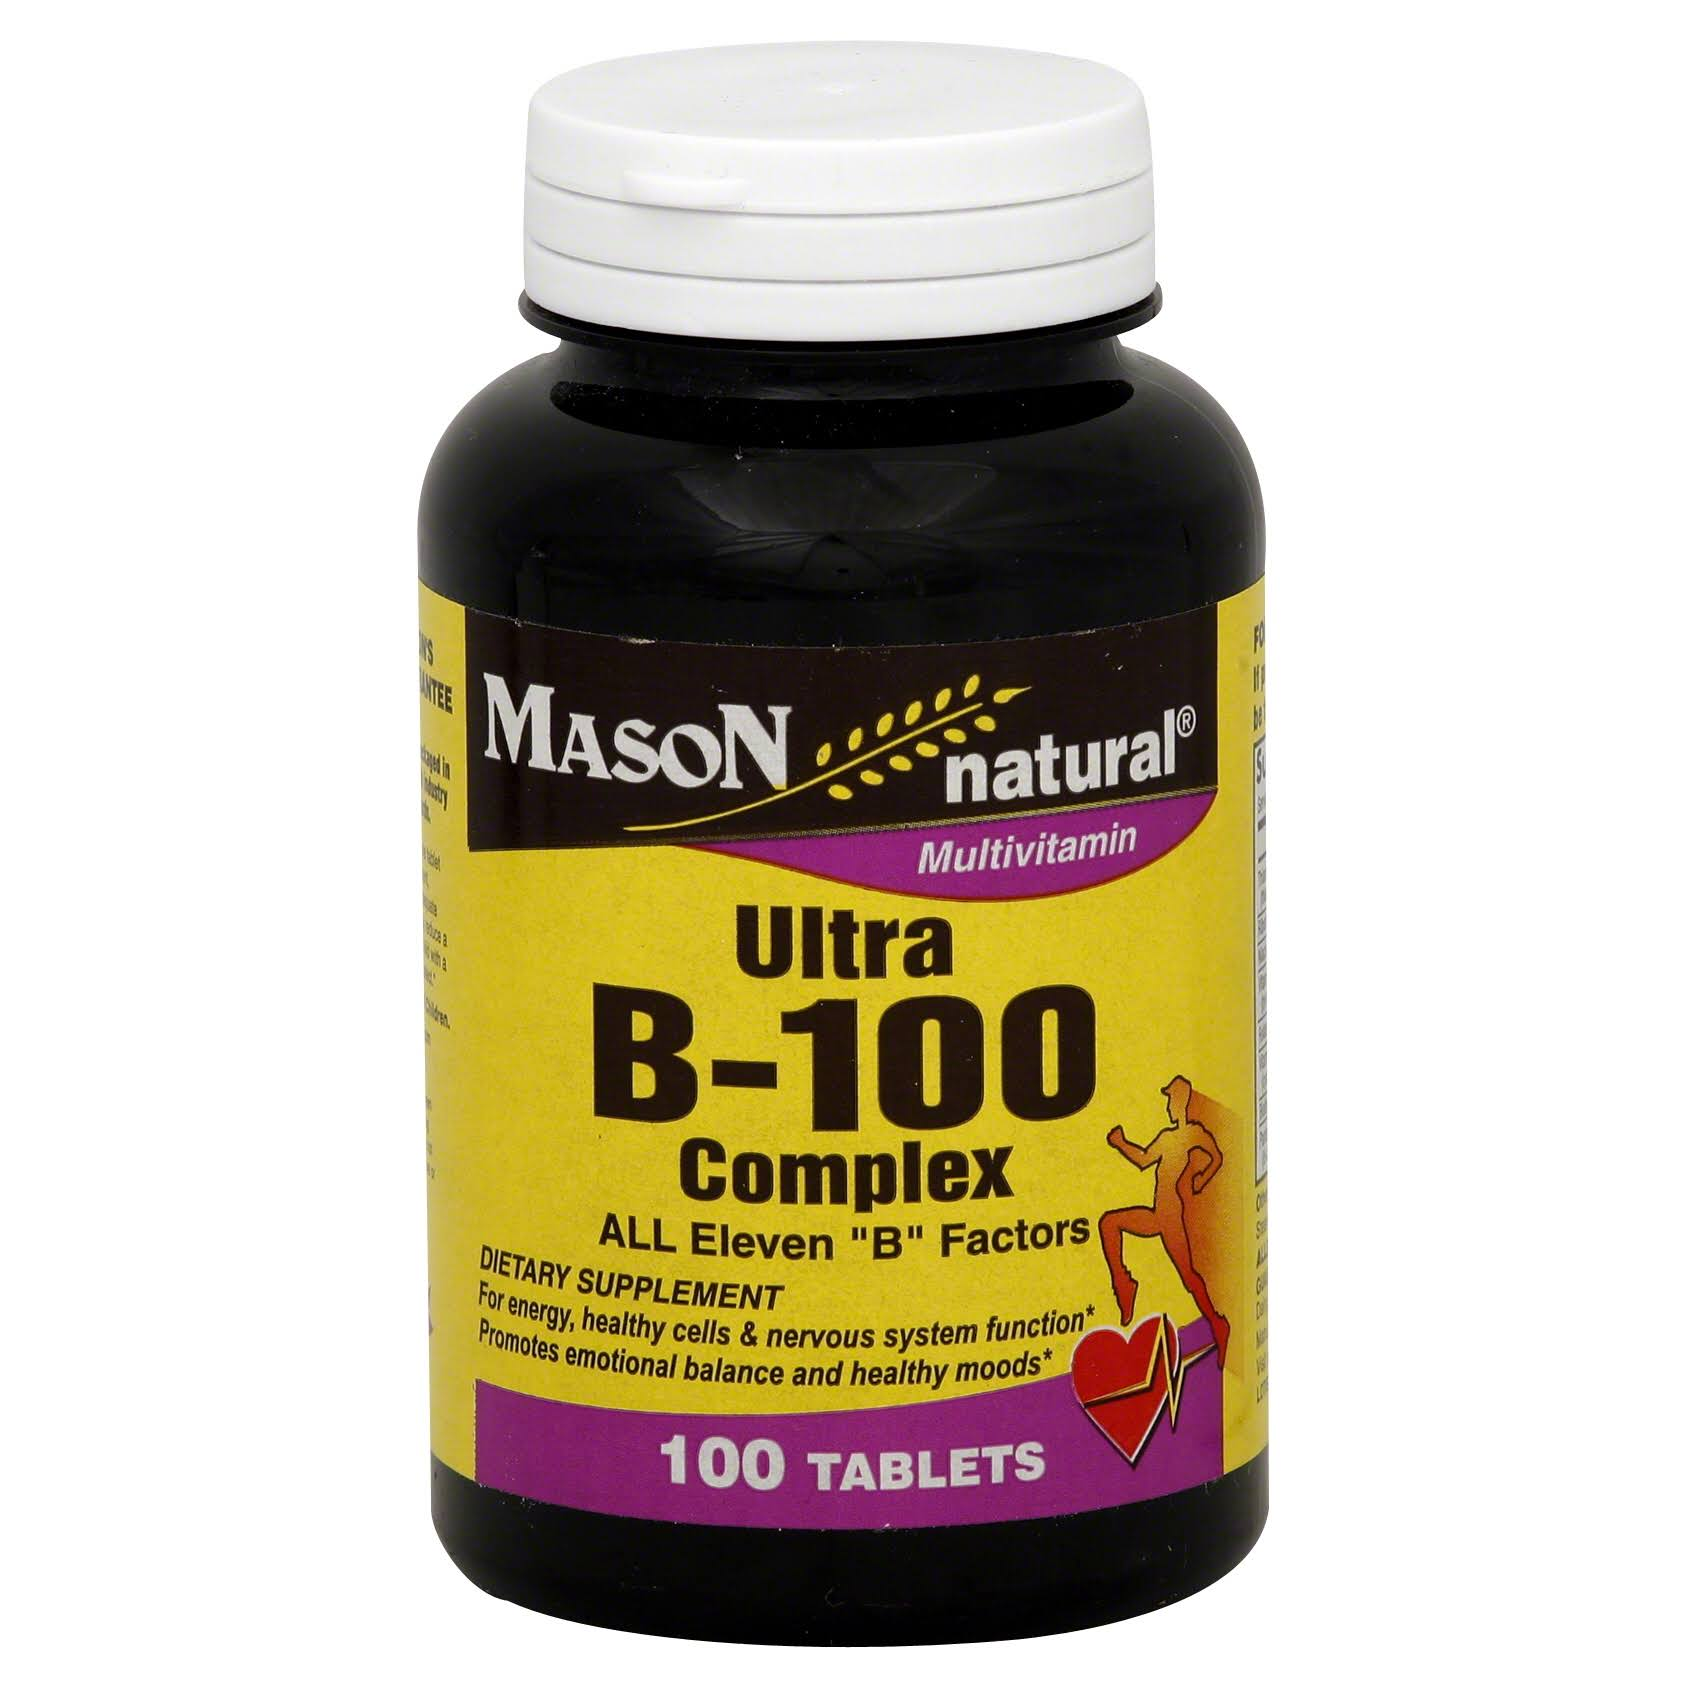 Mason Natural Ultra B-100 Complex Dietary Supplement - 100ct